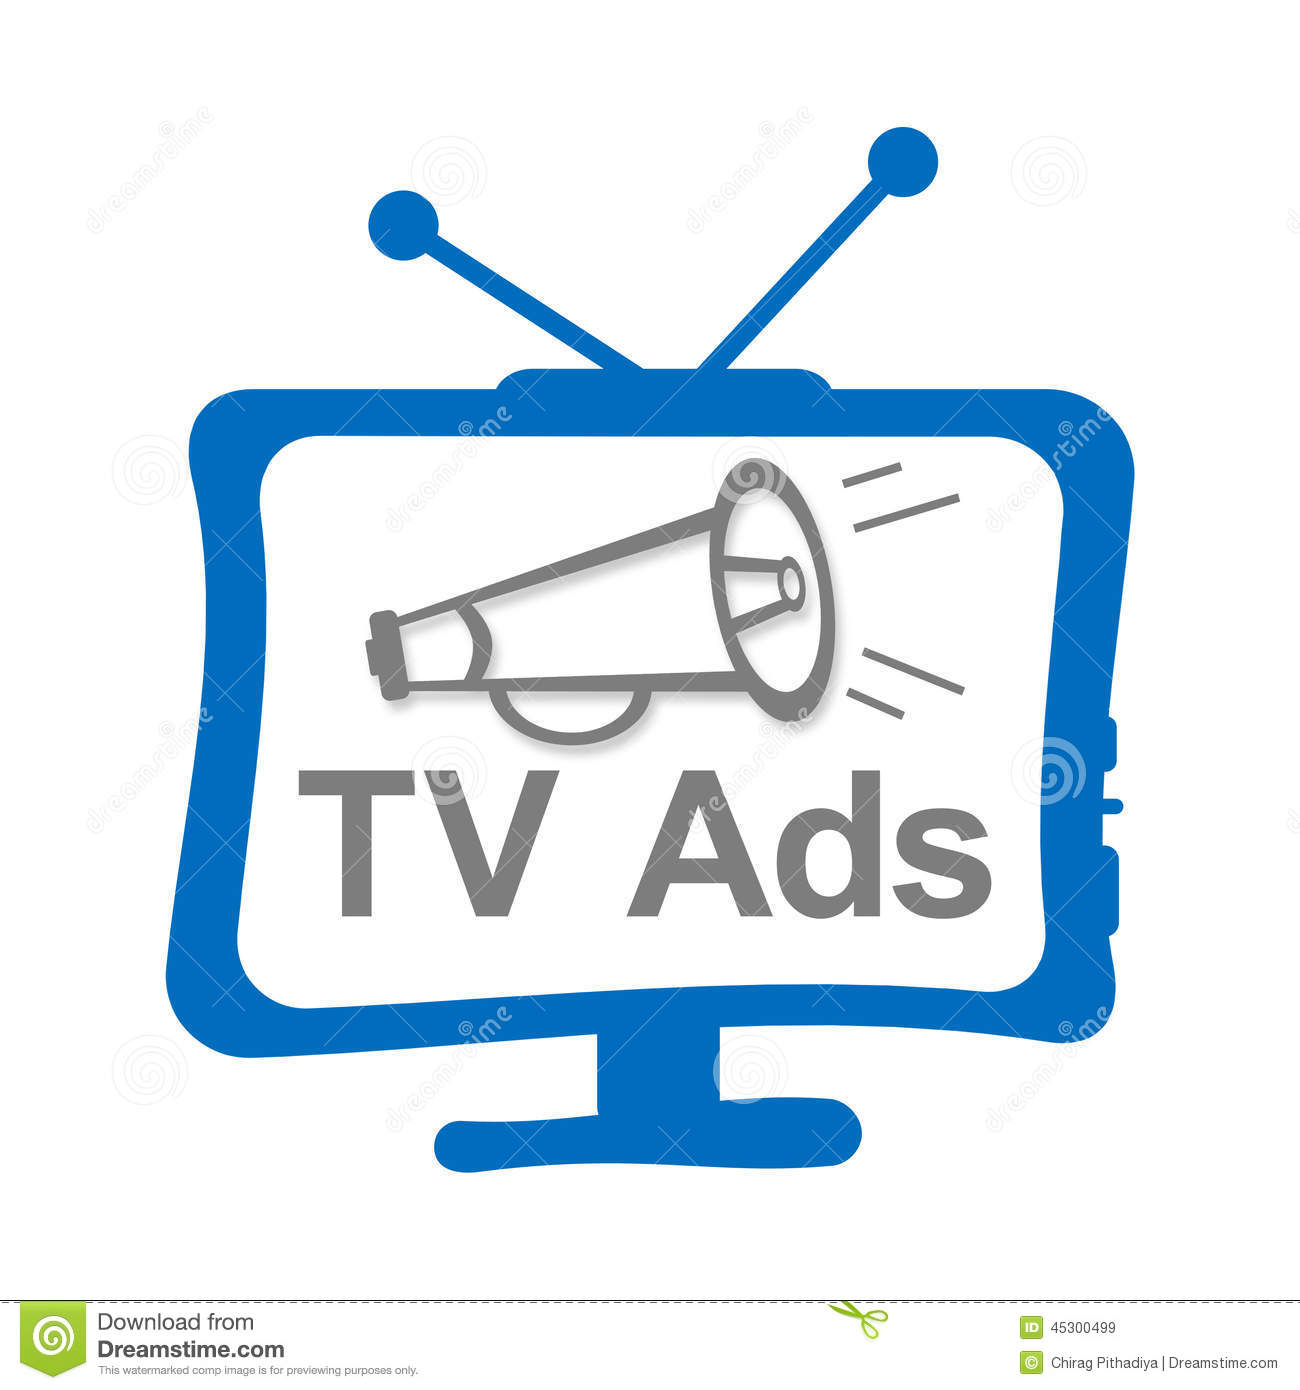 Tv Advertisement Concept Image With Tv Clip Art And Horn With Text